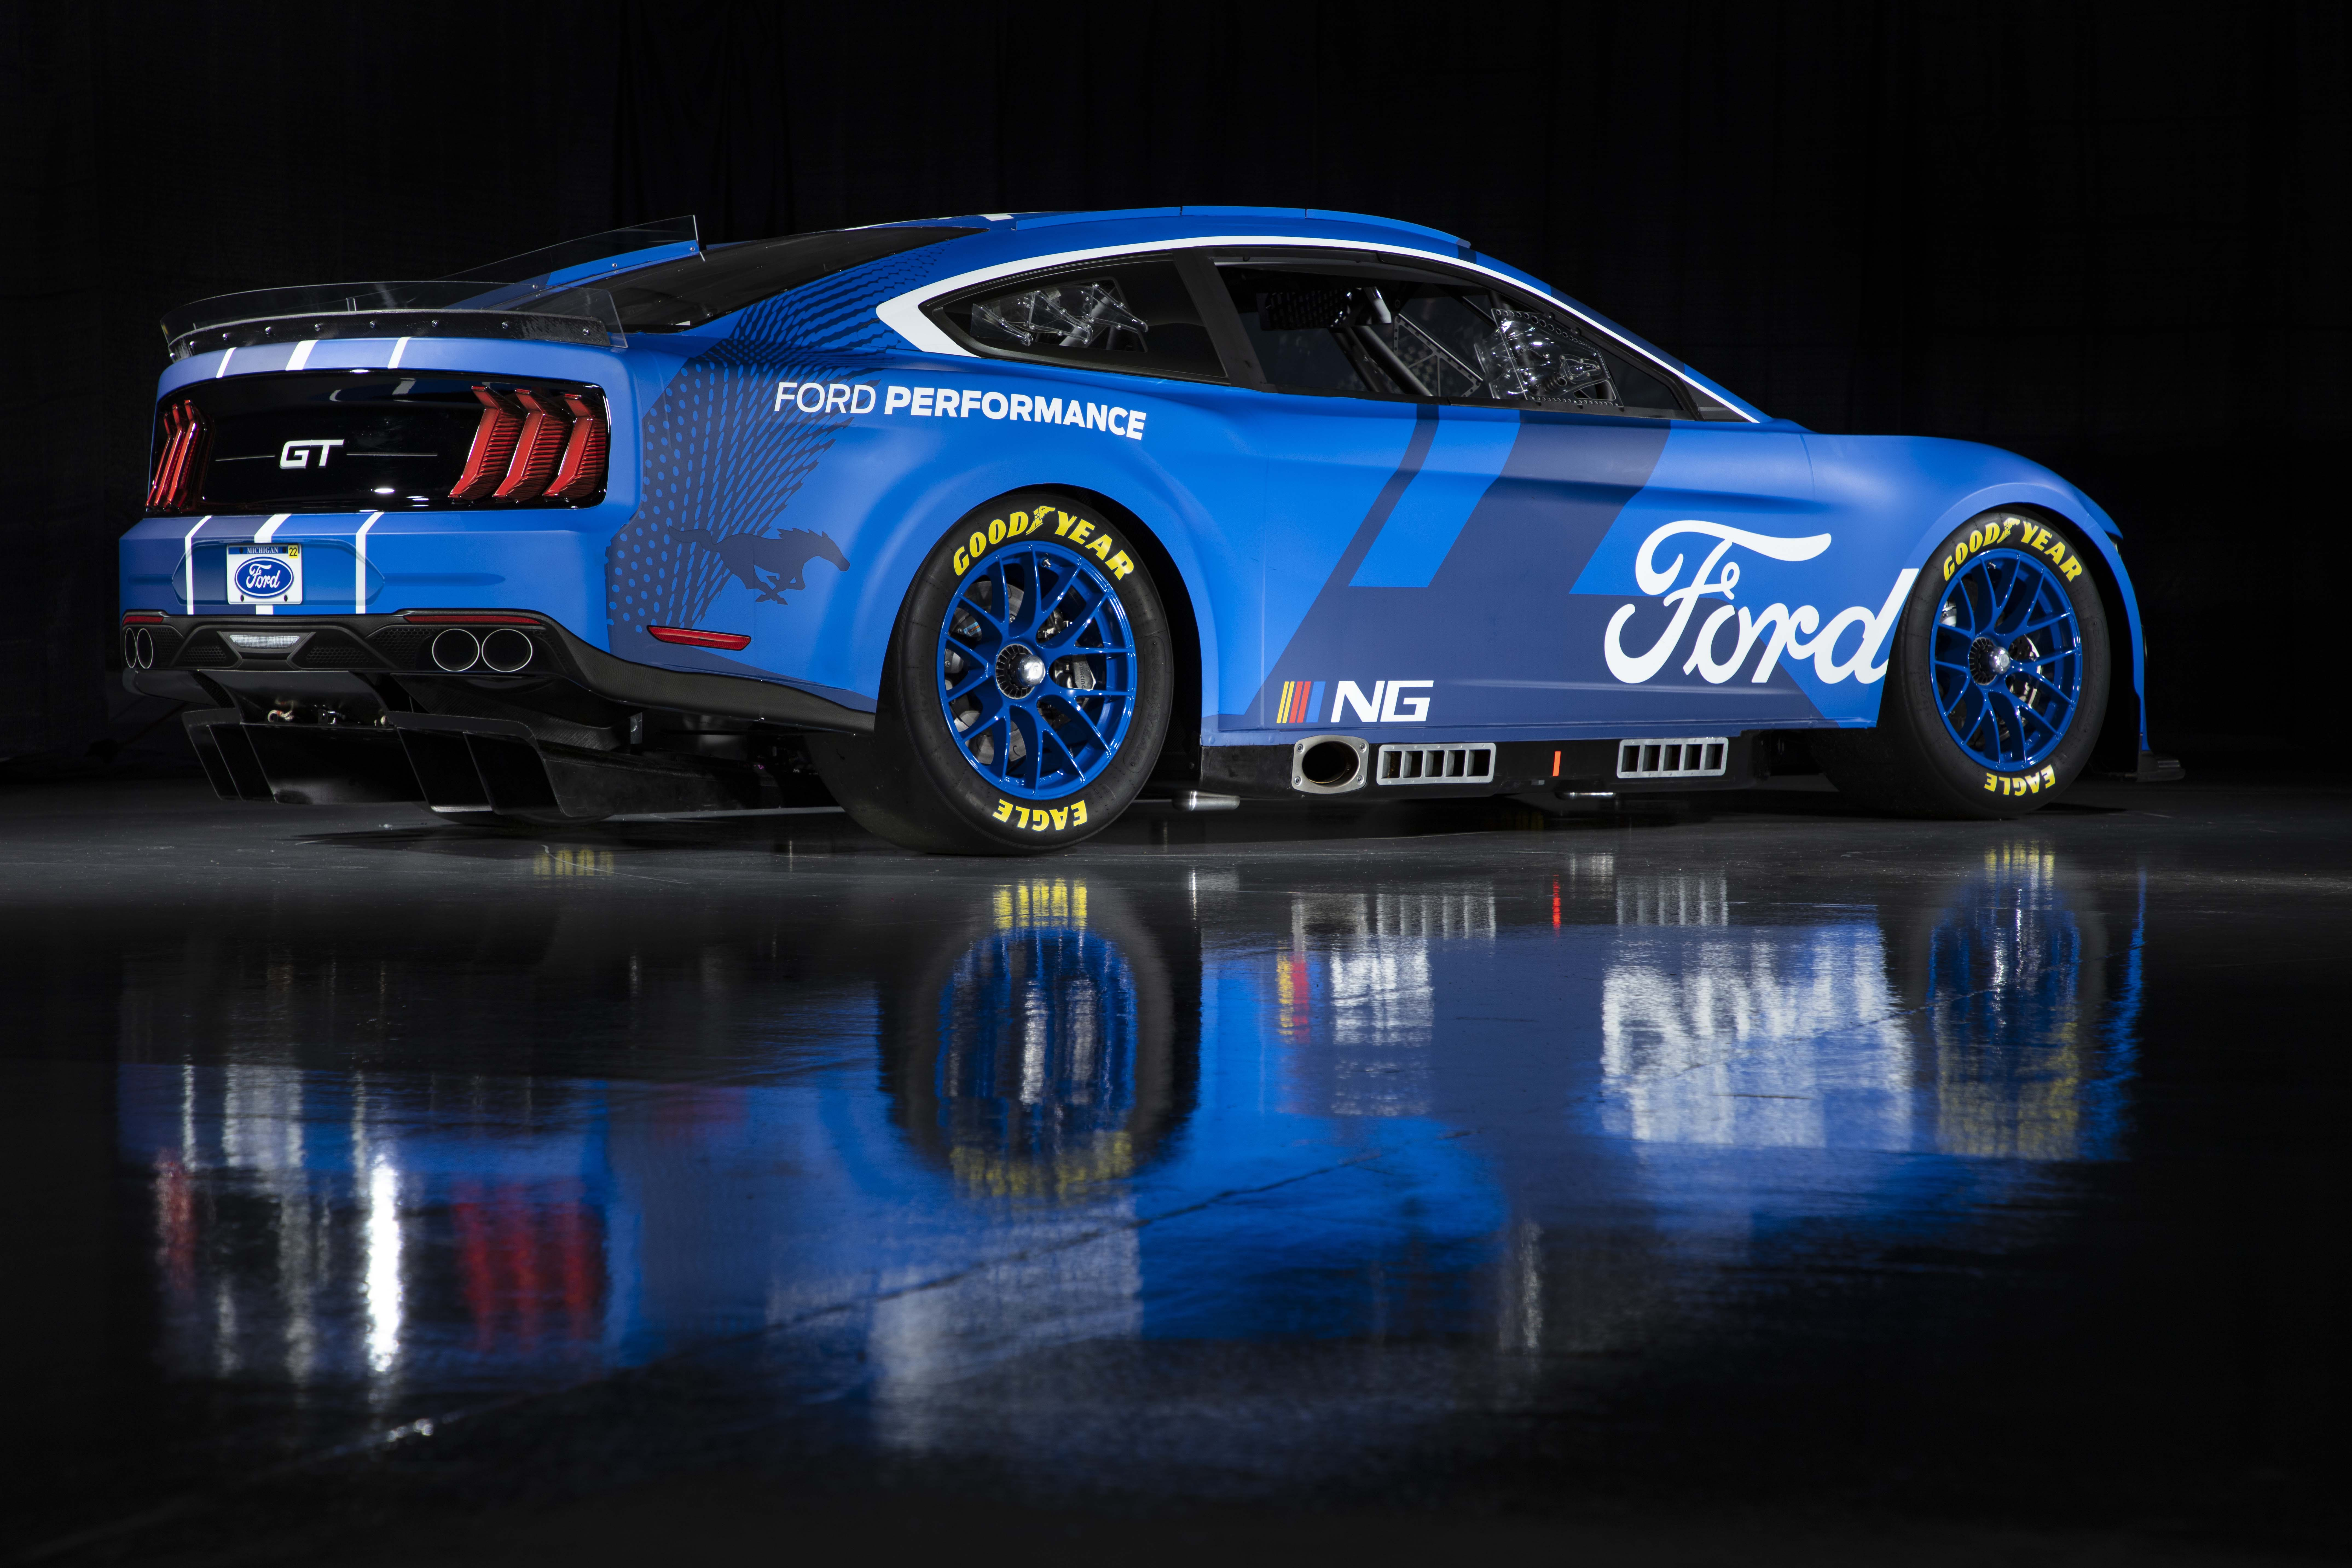 Ford Mustang - 2022 Next Gen Car - Side Photo